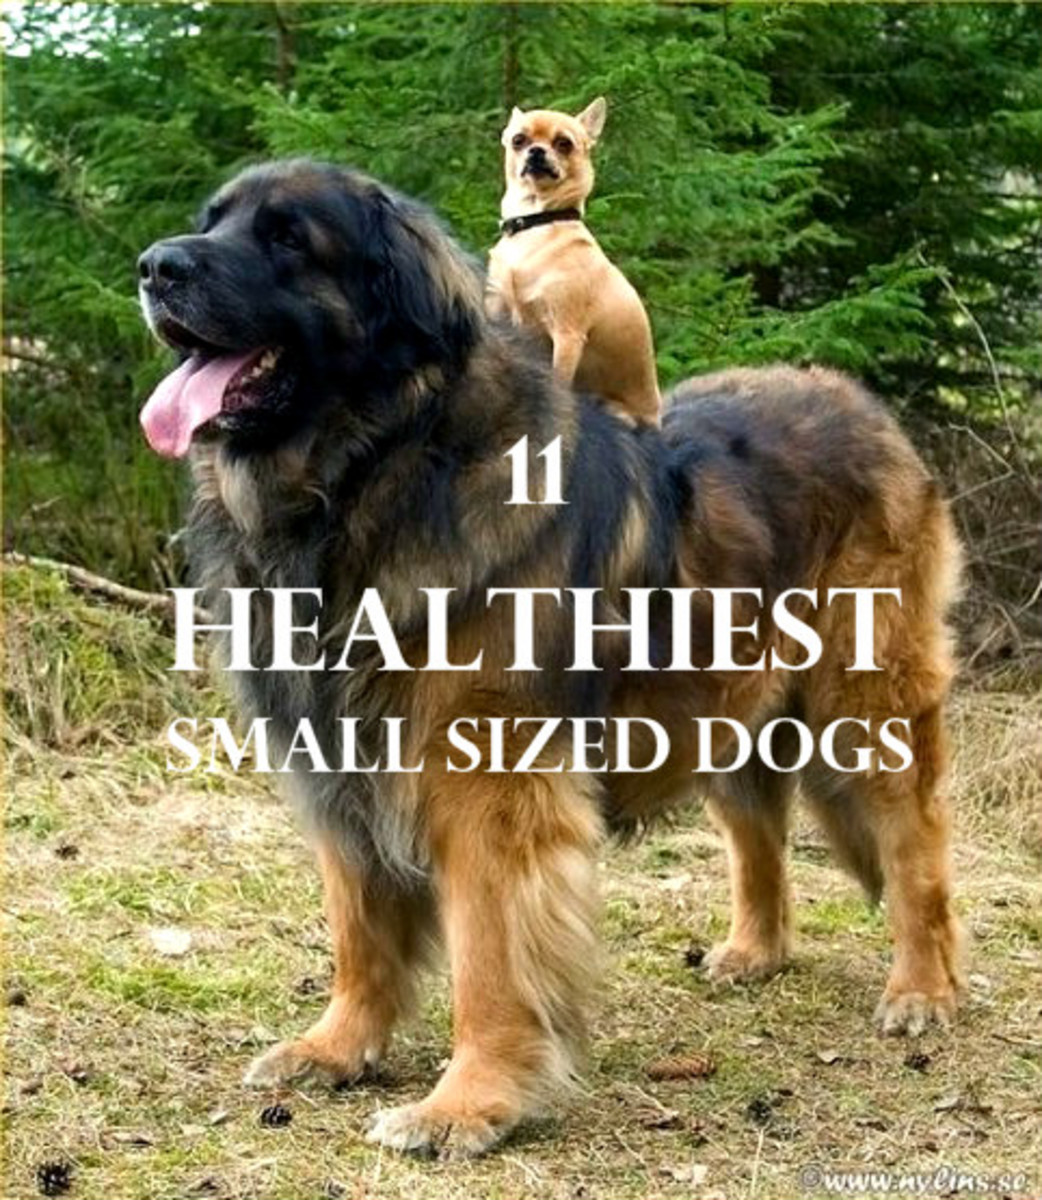 Healthiest Dog Food For Small Dogs